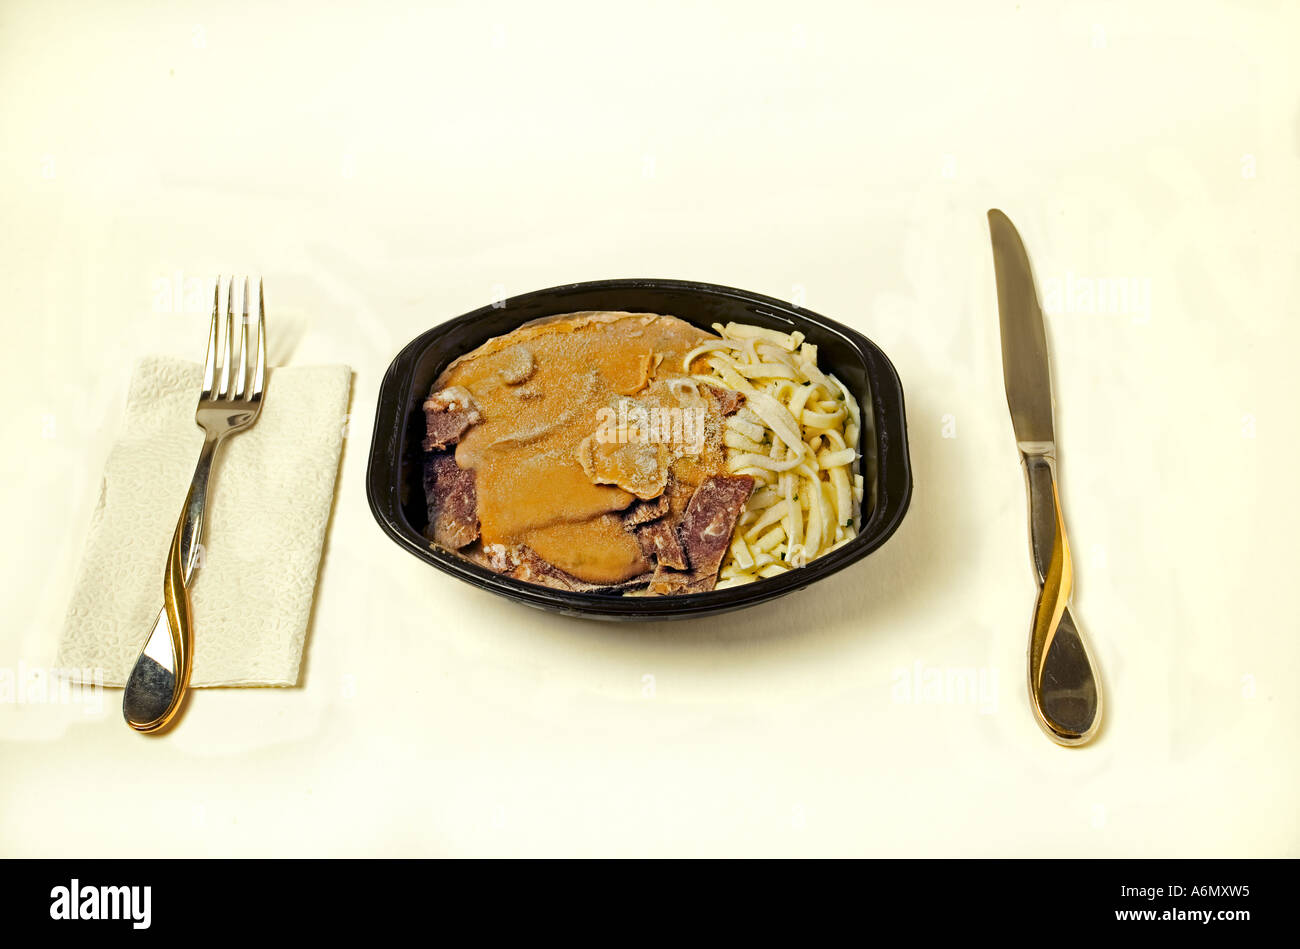 Frozen TV dinner - Stock Image